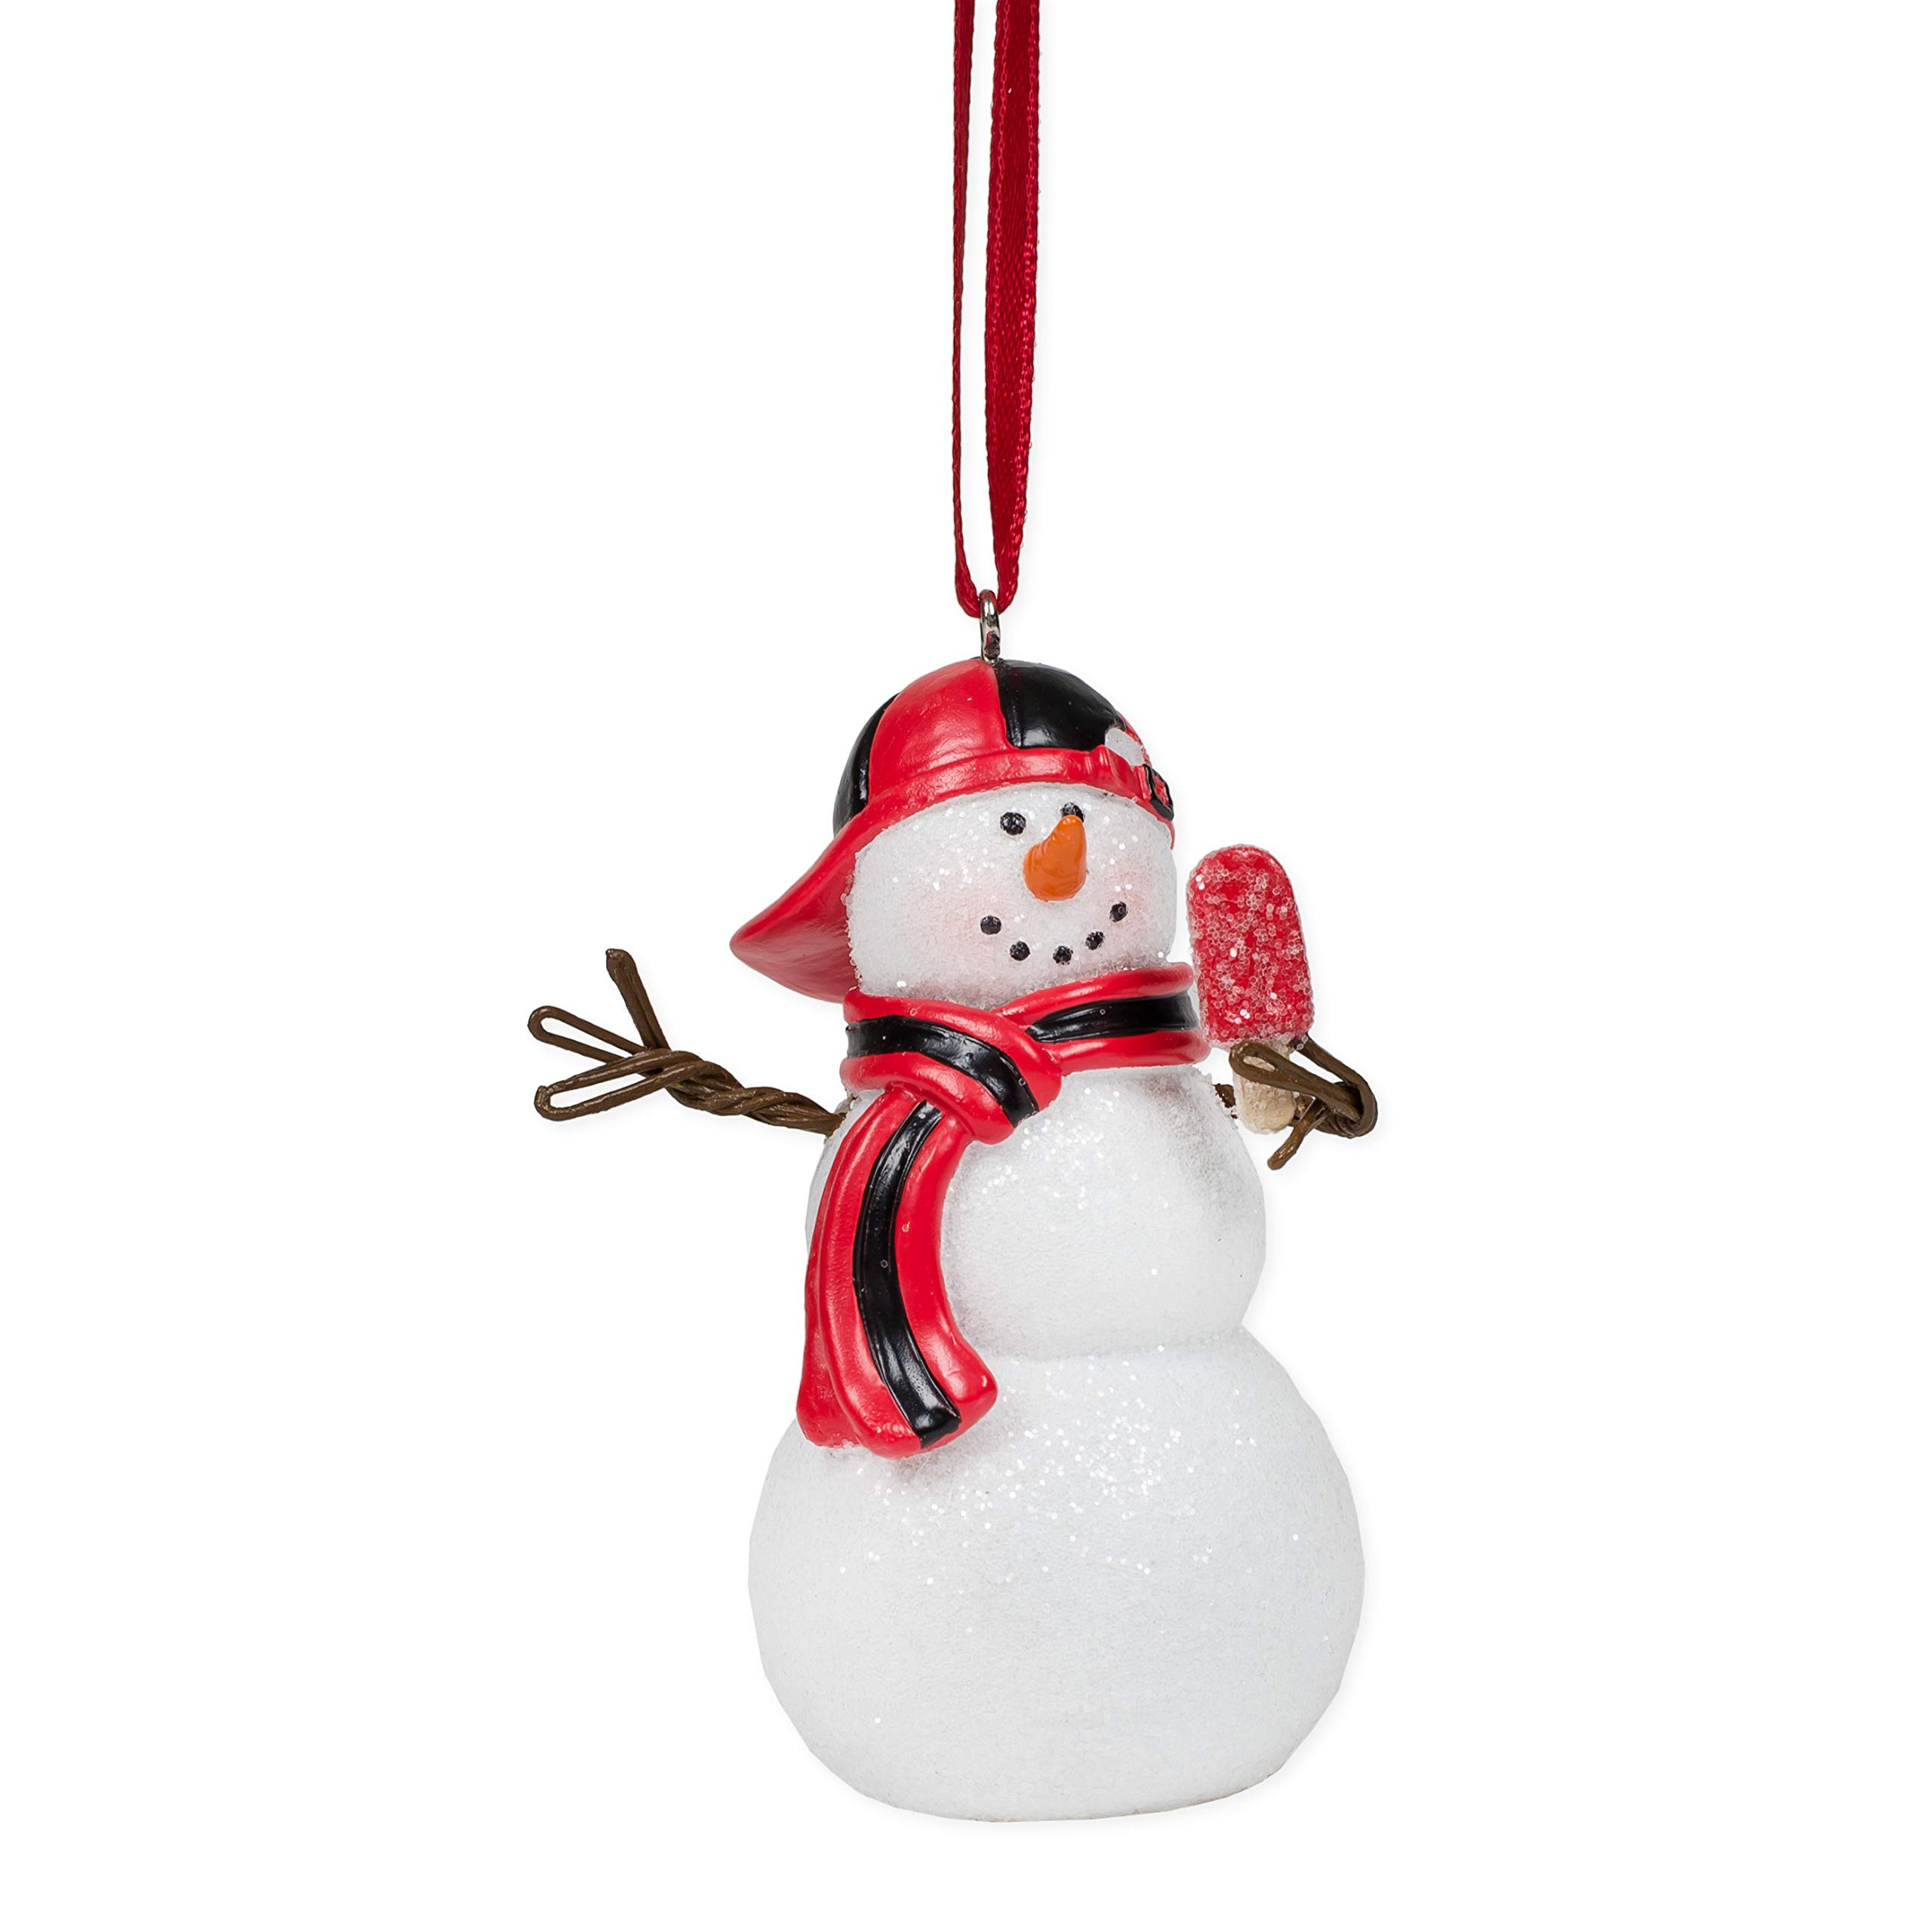 Elanze Designs Snowboy White and Red 3 inch Resin Stone Christmas Hanging Figurine Ornament